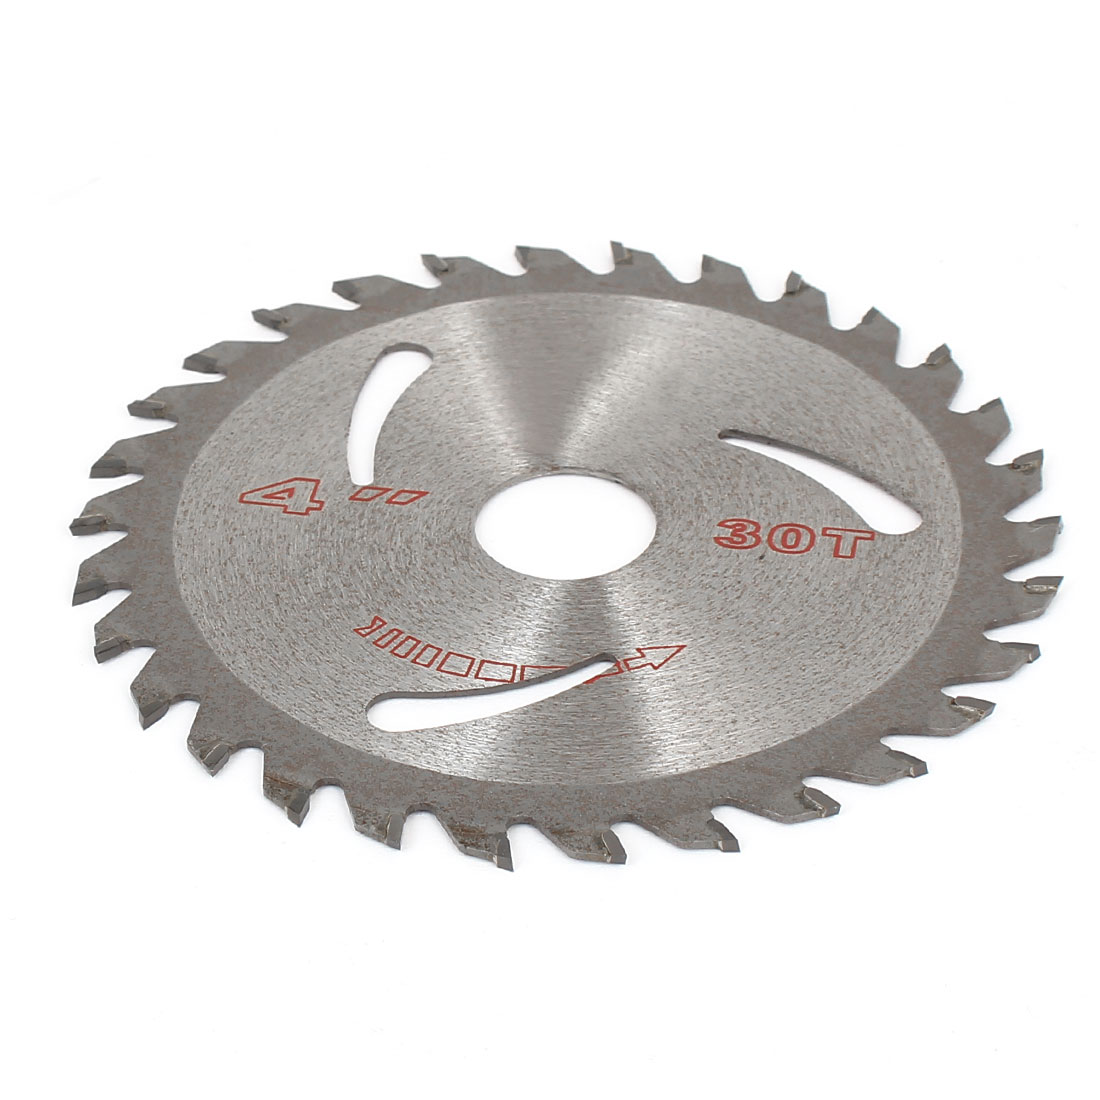 30T 1.5mm Thick Slitting Saw Cutter 110mm Silver Tone for Wood Plastic Metal